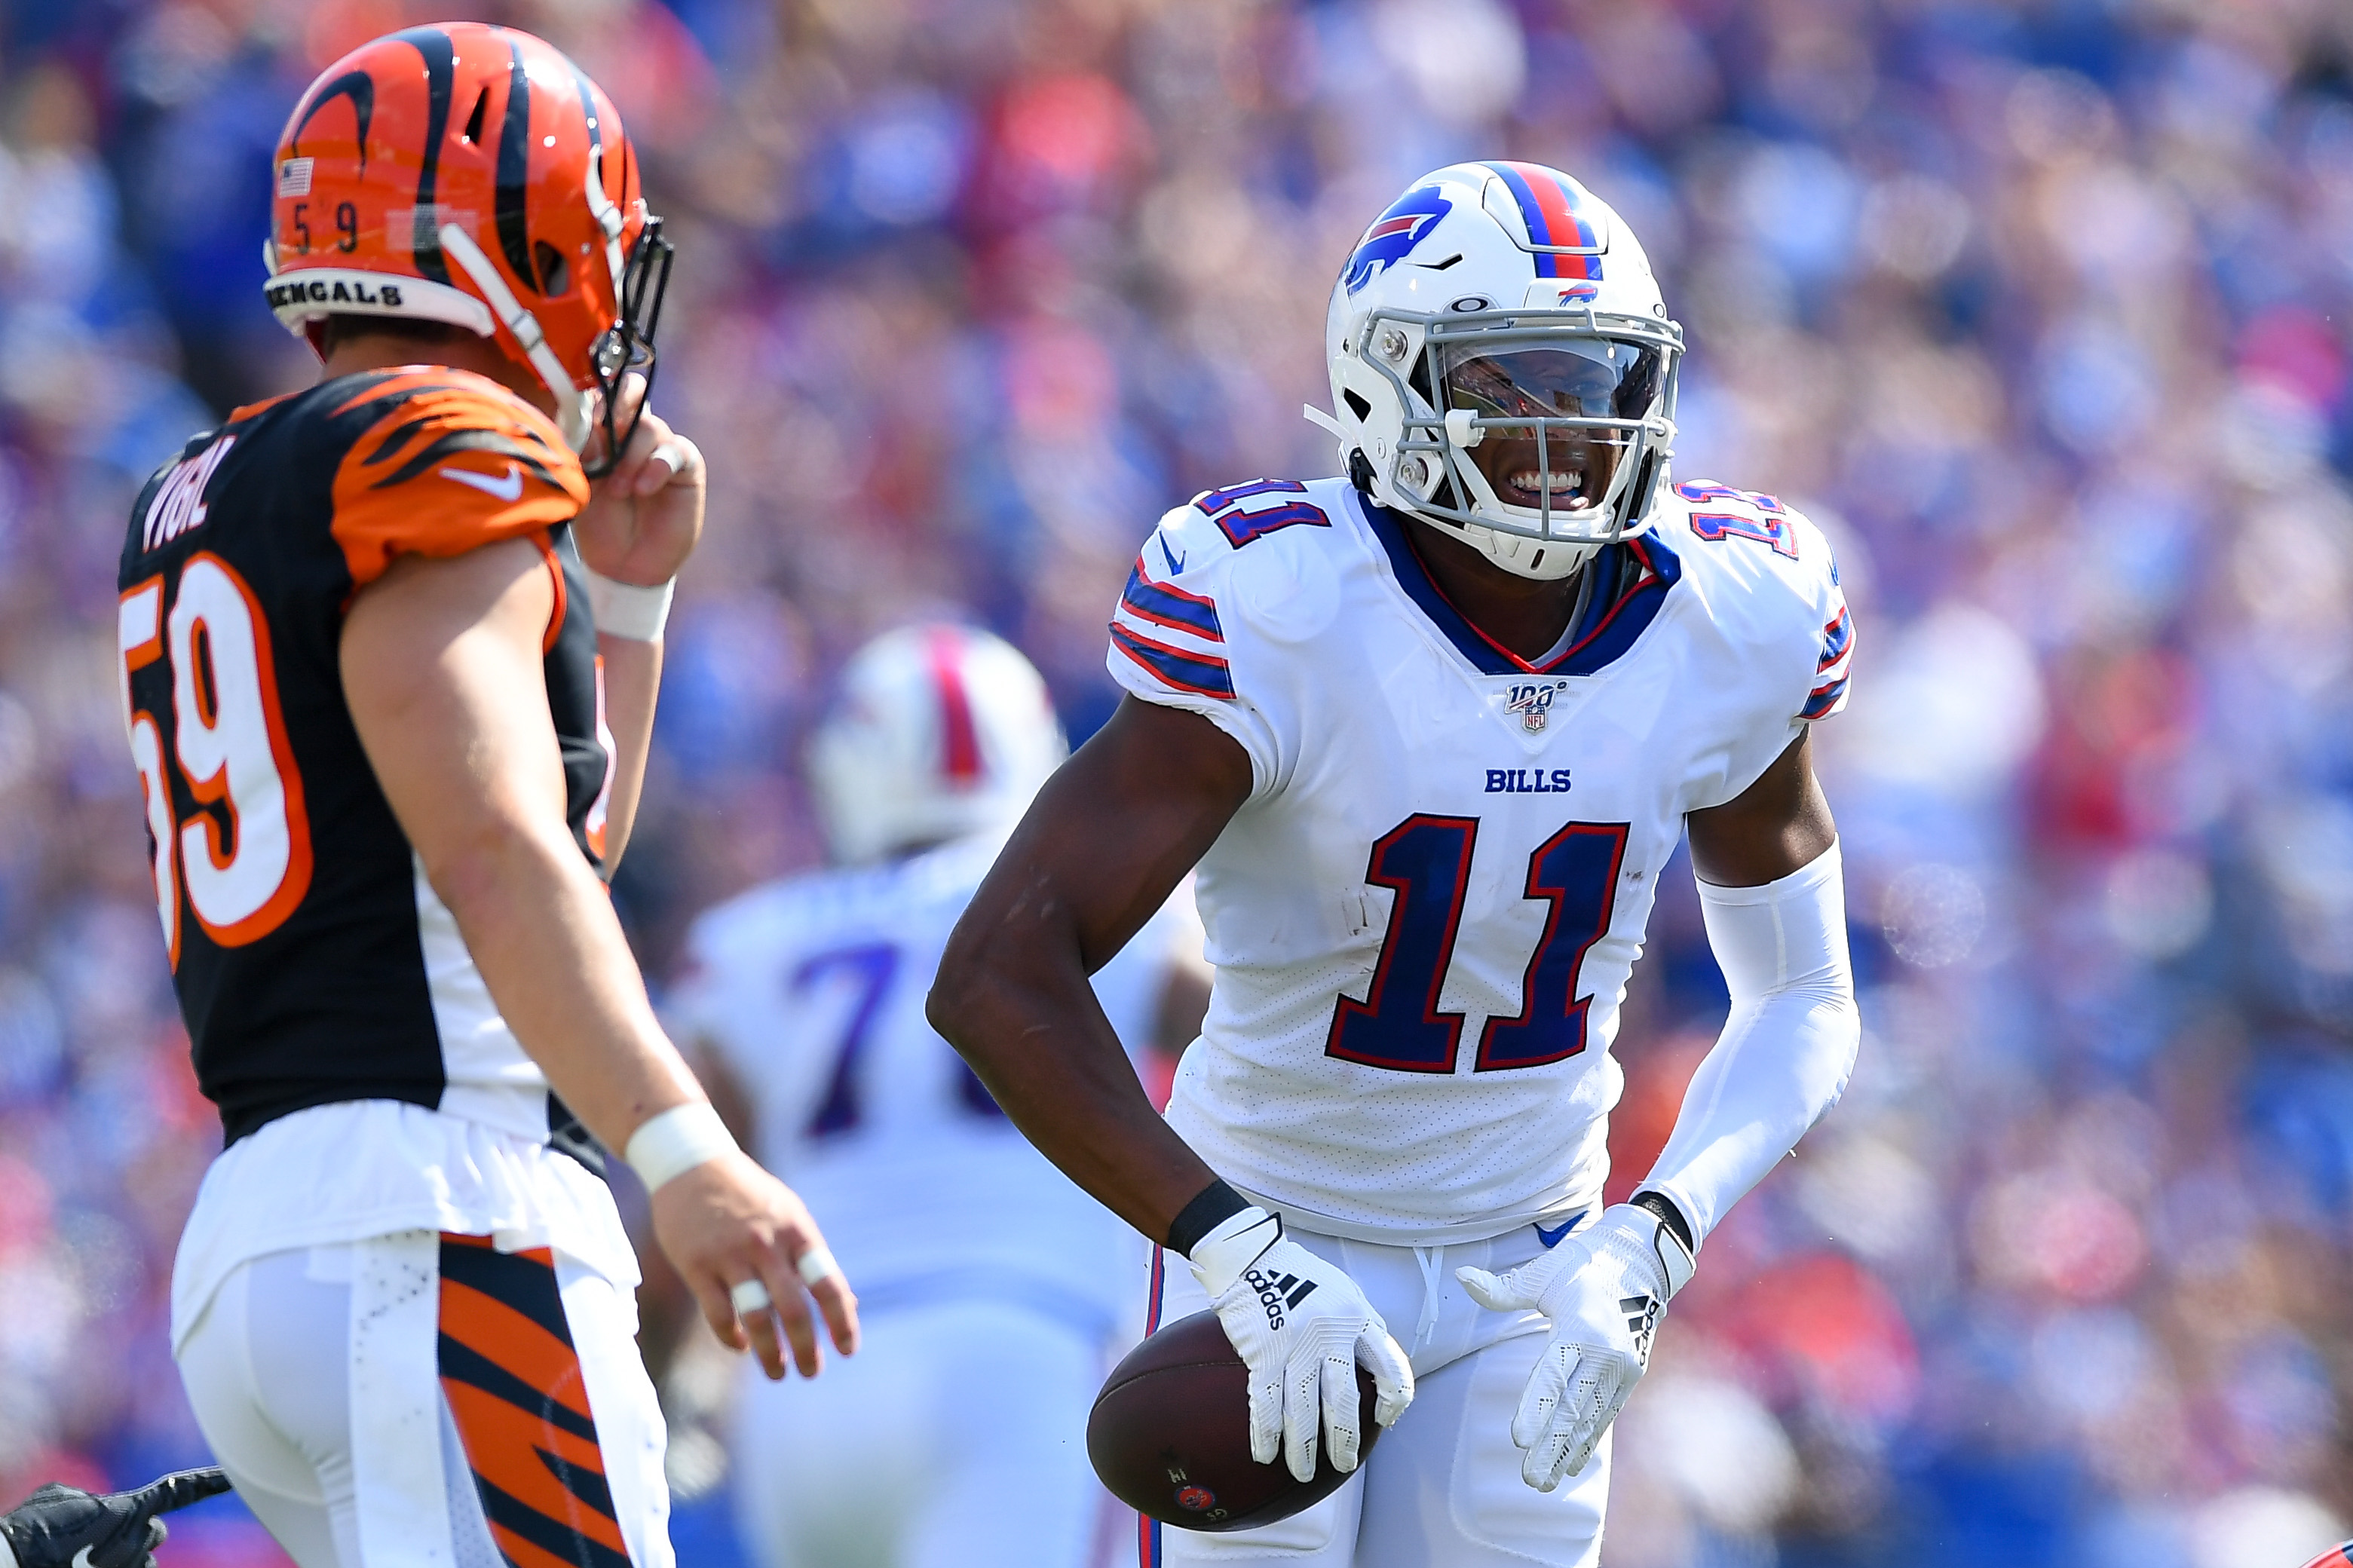 NFL: Cincinnati Bengals at Buffalo Bills